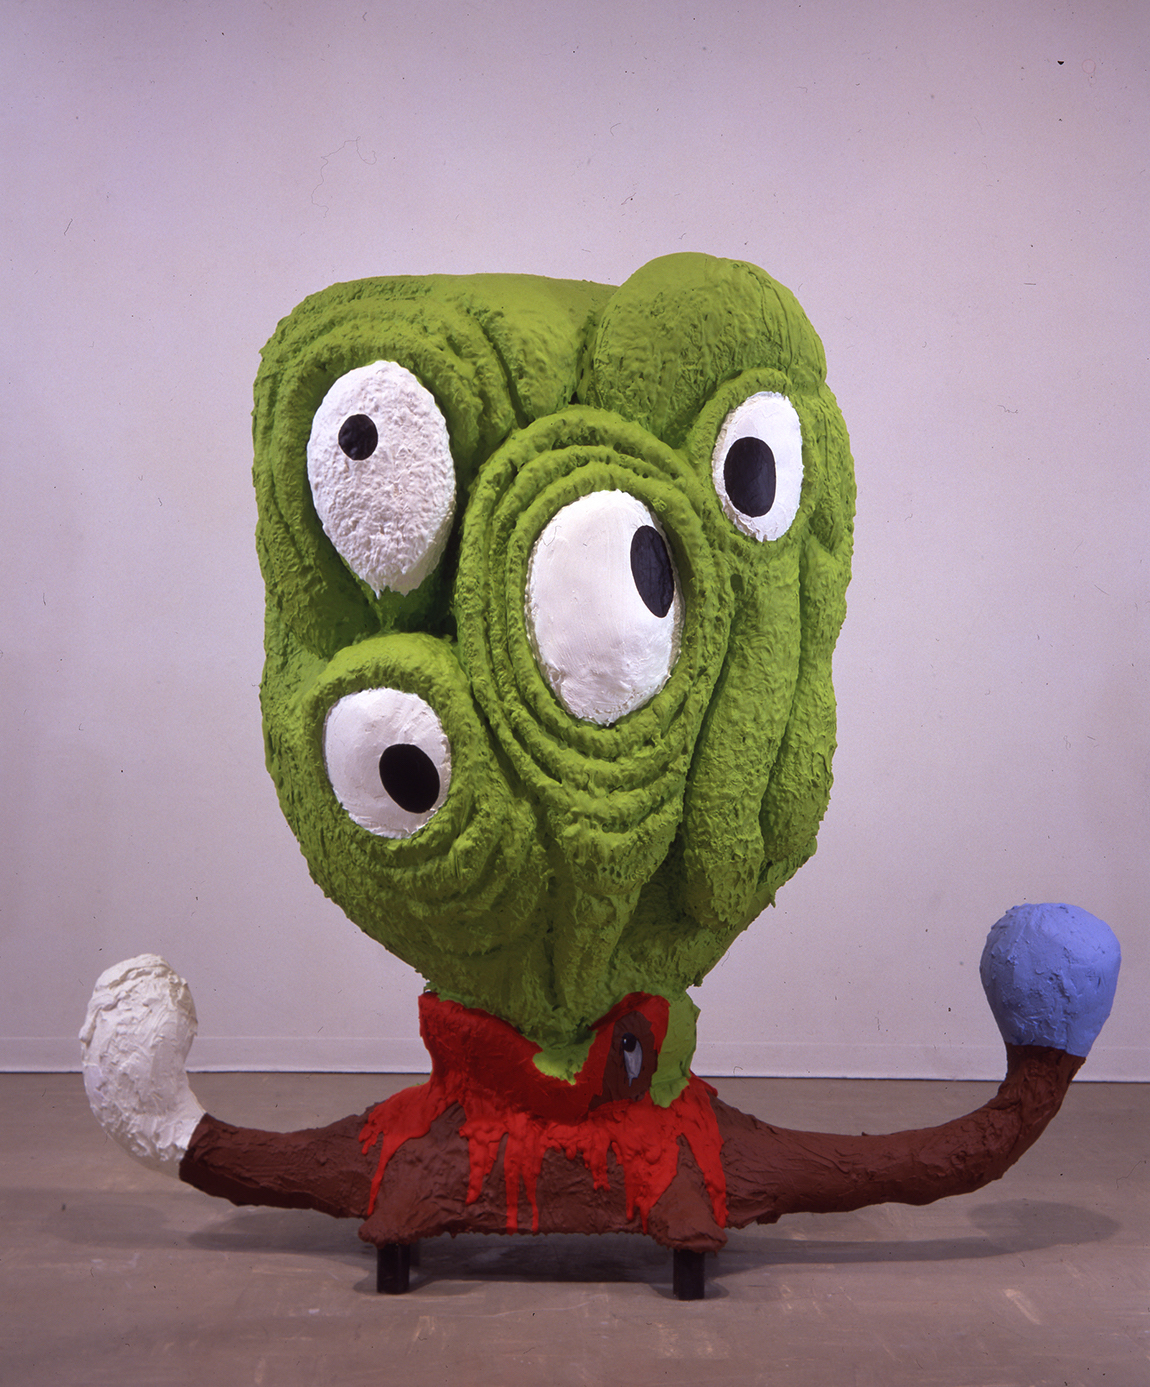 Victor Estrada, Happiness, 1994-1995,Foam, plaster and paint.